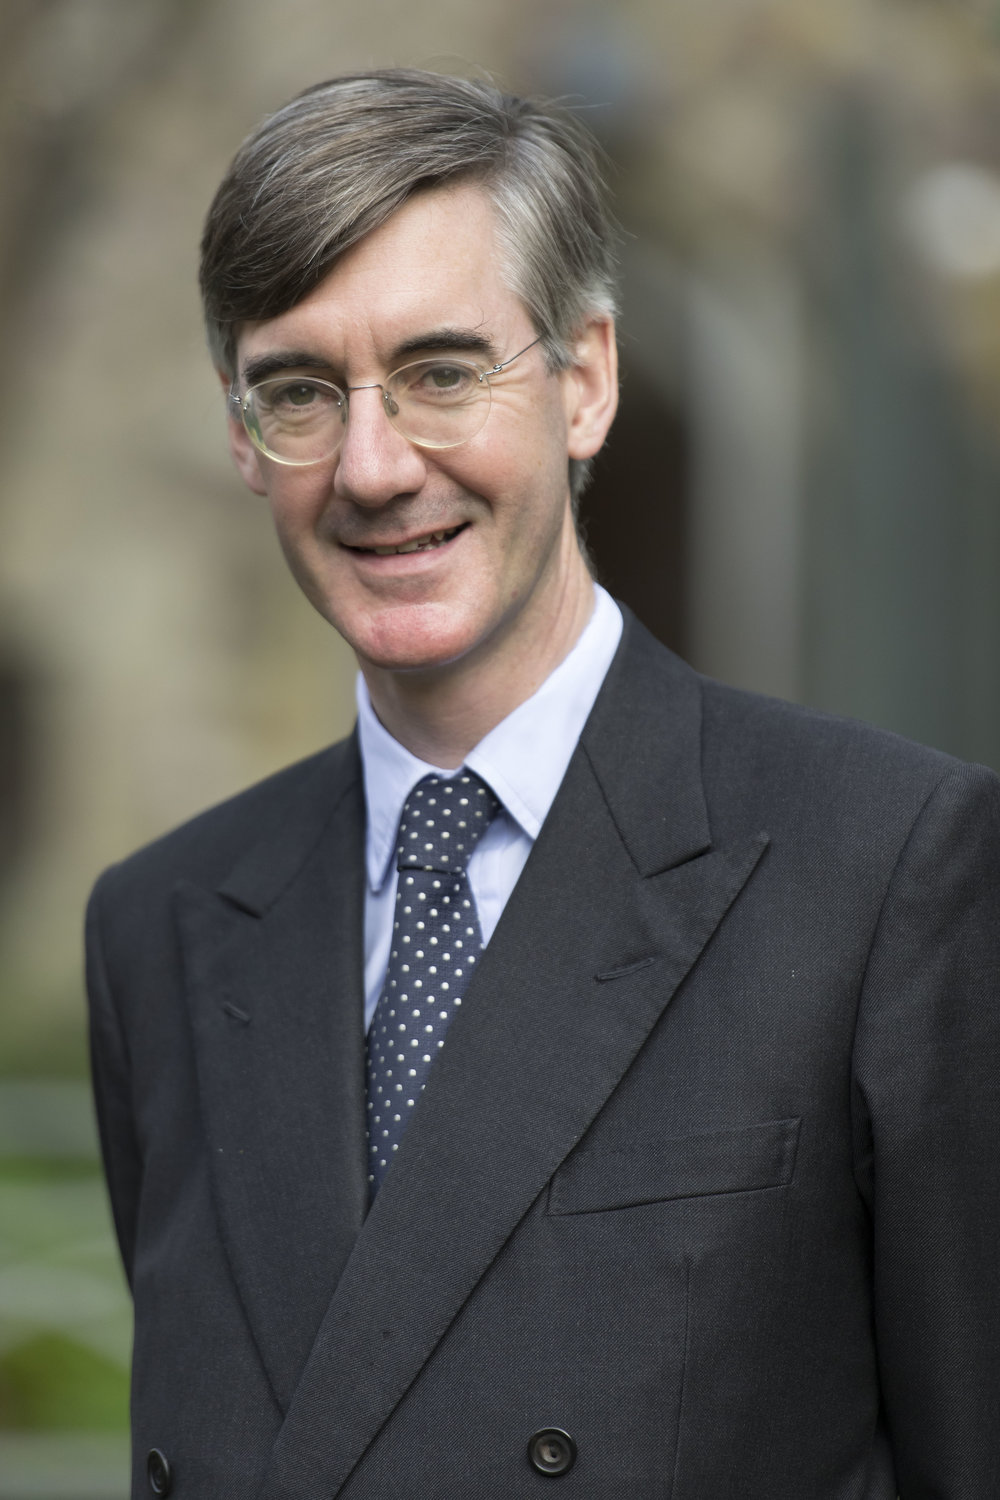 "CARDIFF, WALES - SEPTEMBER 29: Jacob Rees-Mogg, MP for North East Somerset, poses for a picture following a talk called Faith in the Future at the Cornerstone Church on September 29, 2017 in Cardiff, Wales. The talk, titled ""Faith in the Future"", explores issues surrounding the importance of faith in the public and private life of our society. Jacob Rees-Mogg has recently caused controversy over his opposition to abortion after rape or incest. (Photo by Matthew Horwood/Getty Images)"